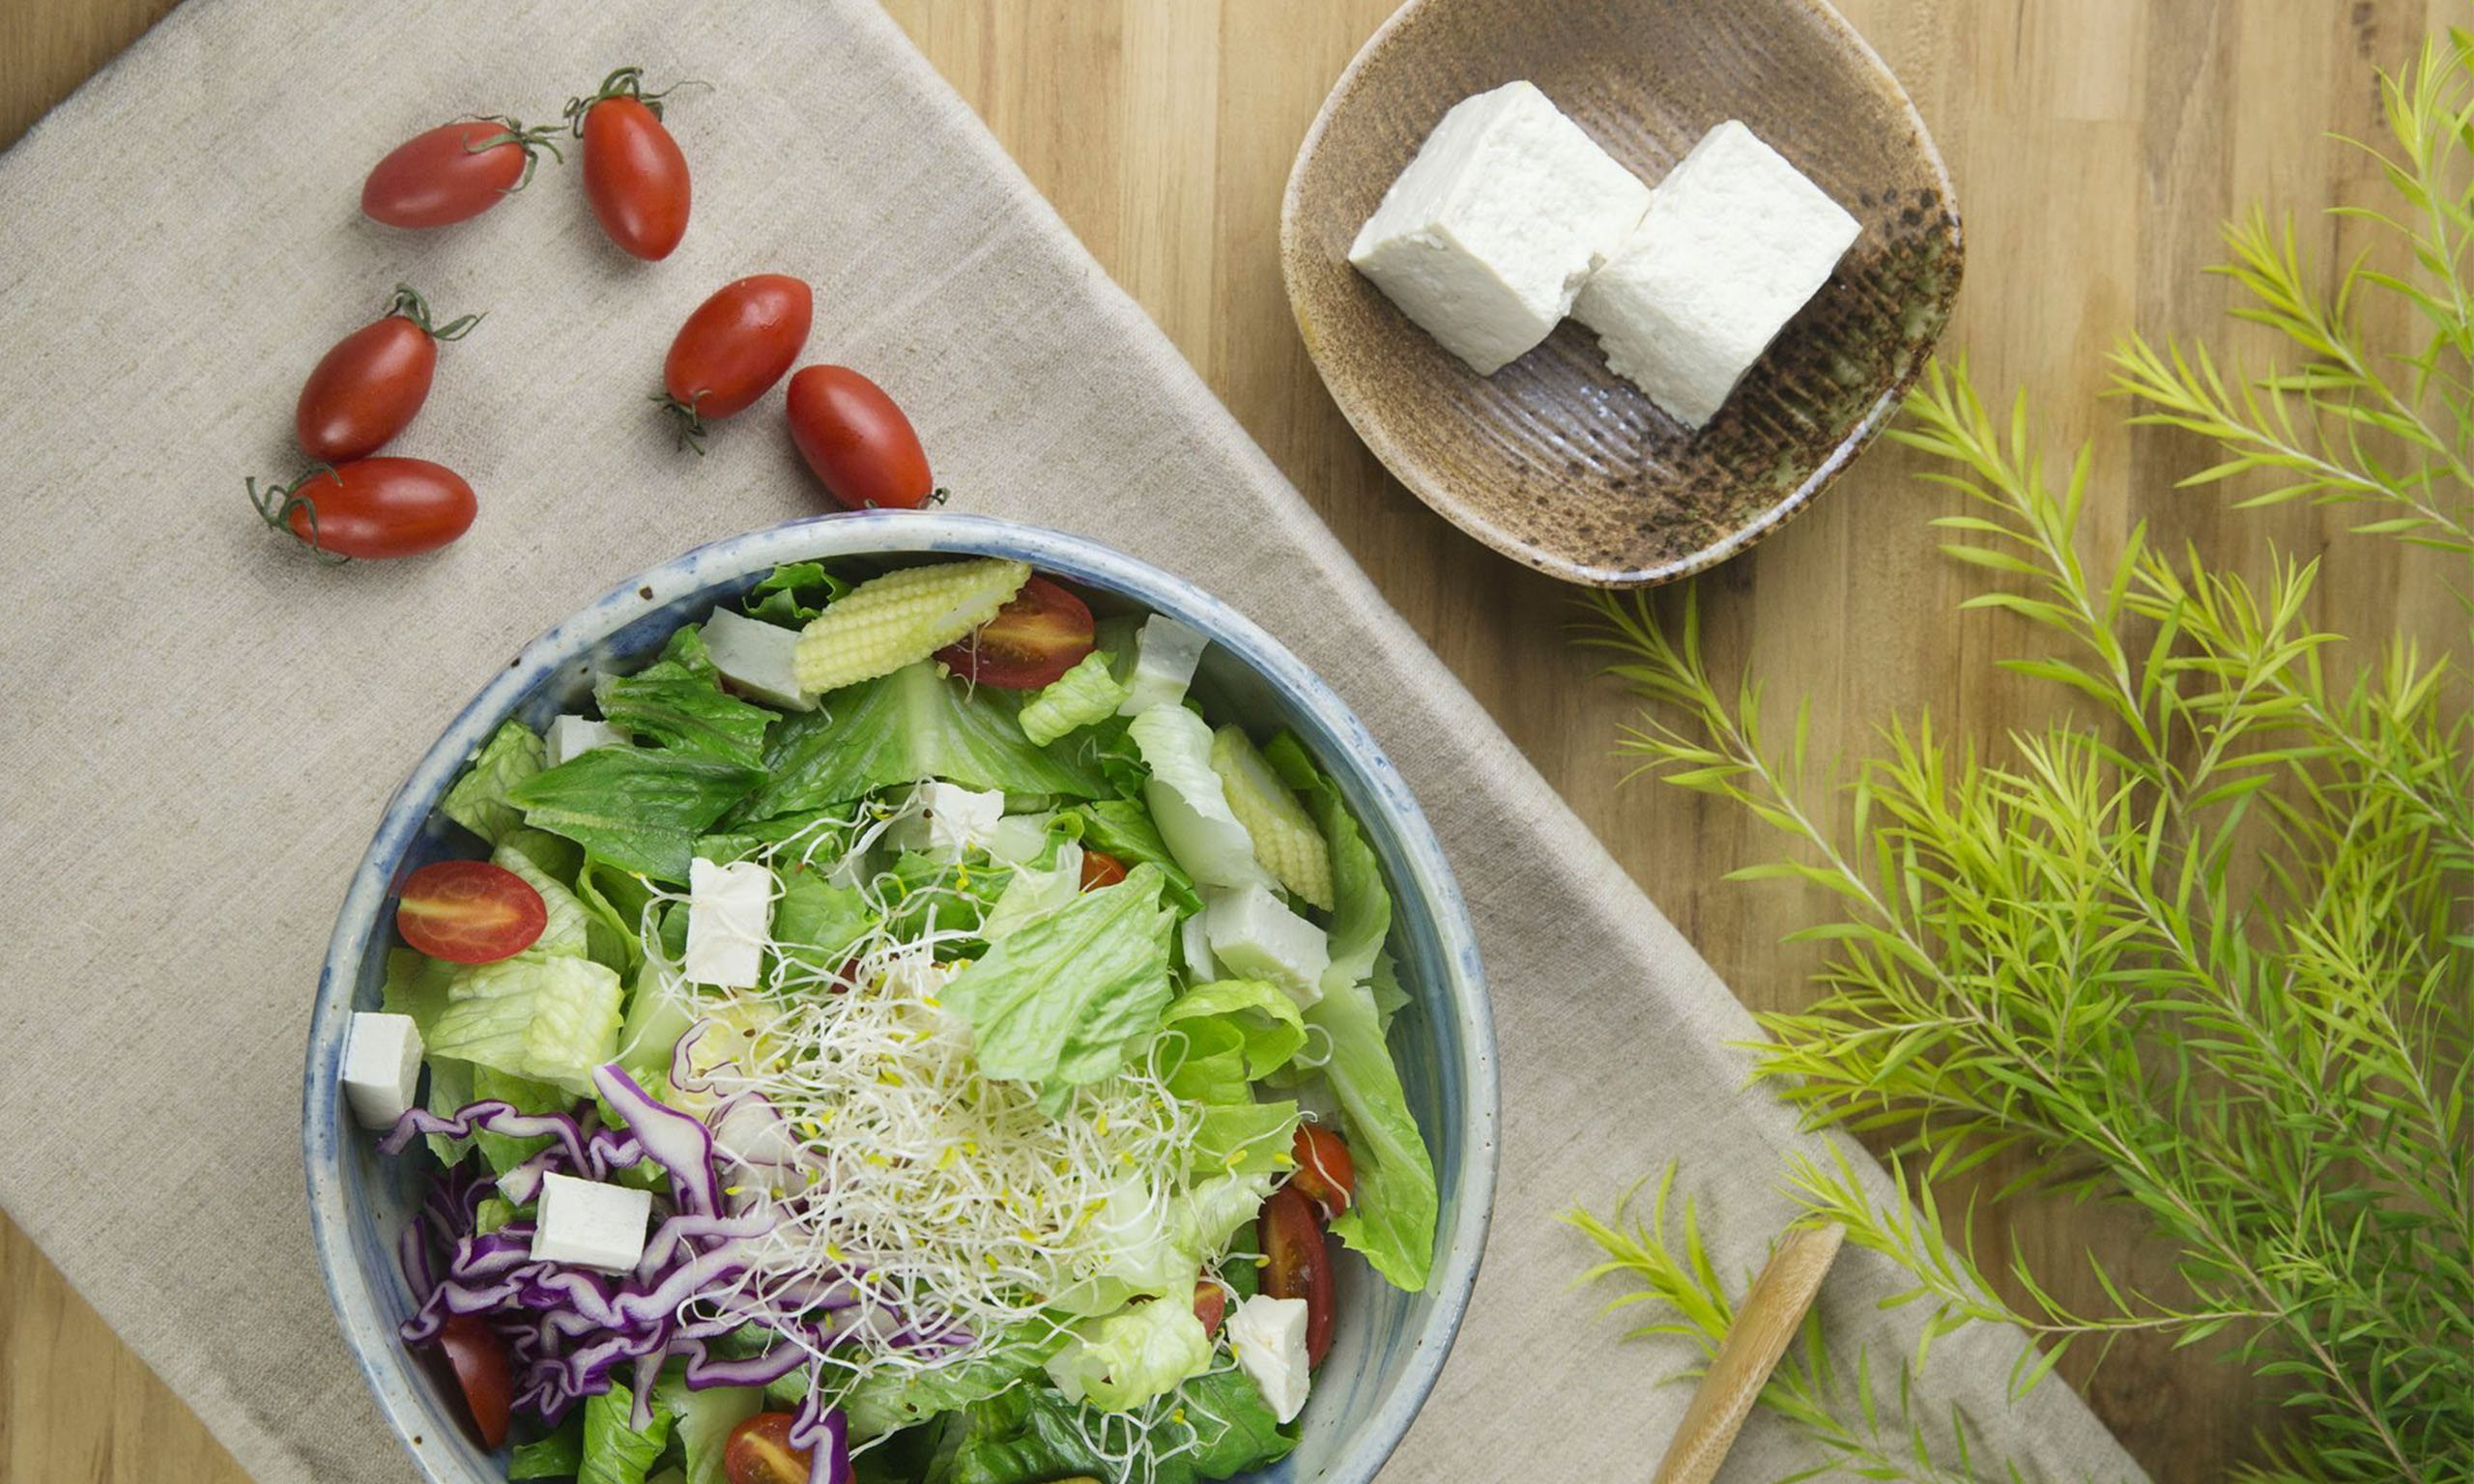 Handmade Tofu Salad - Use non-GMO soybeans